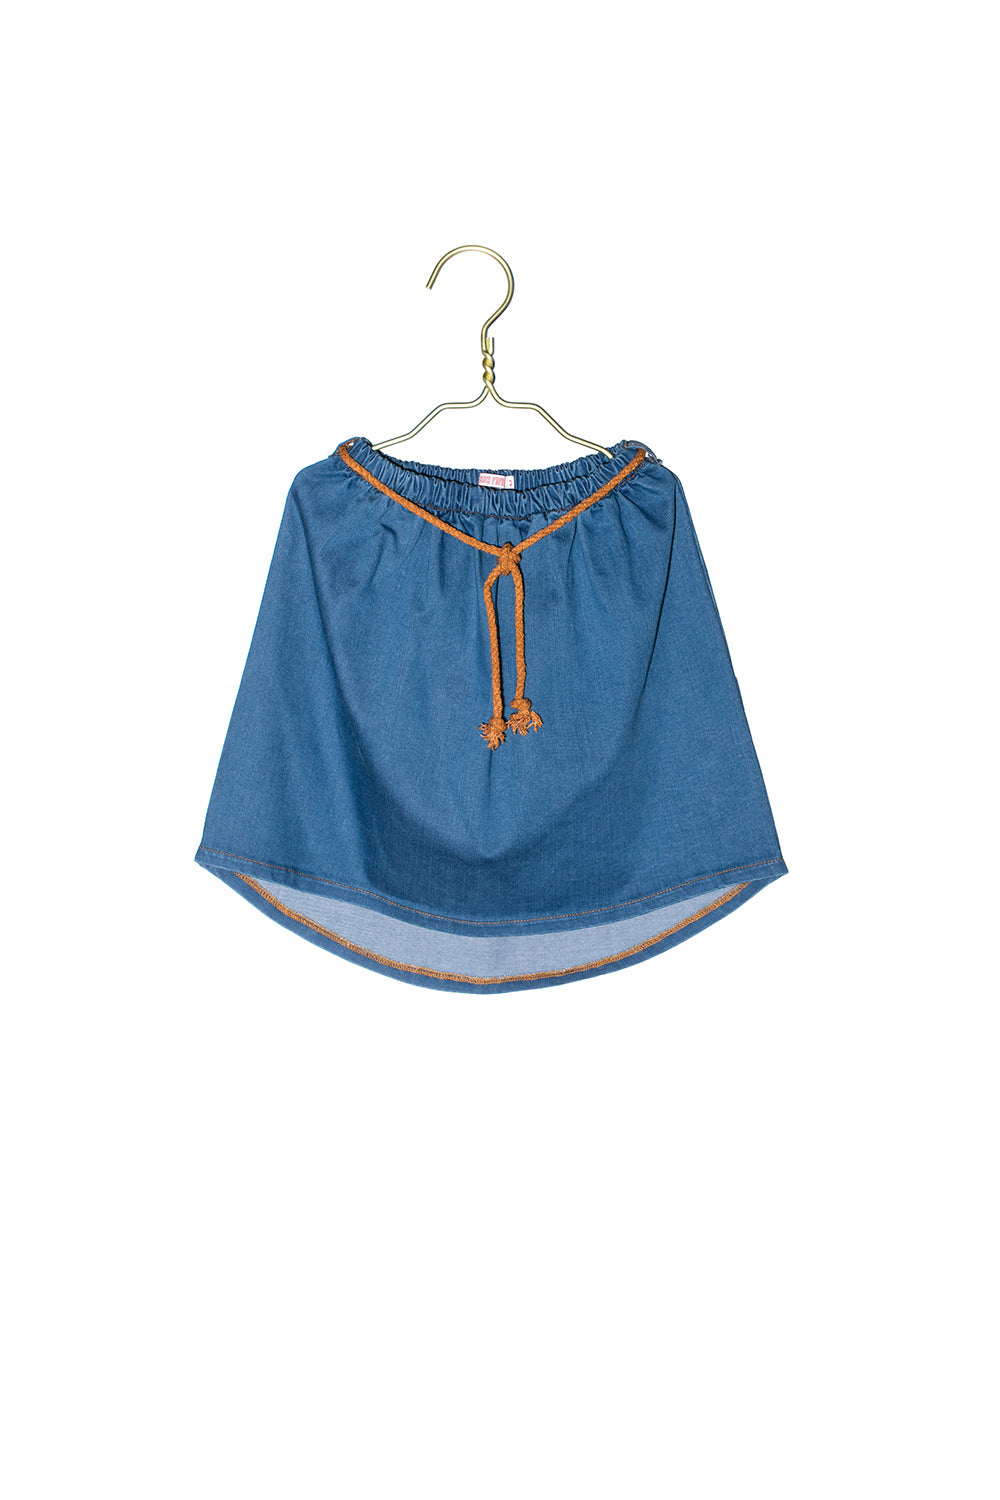 1520 Denim Blue Skirt